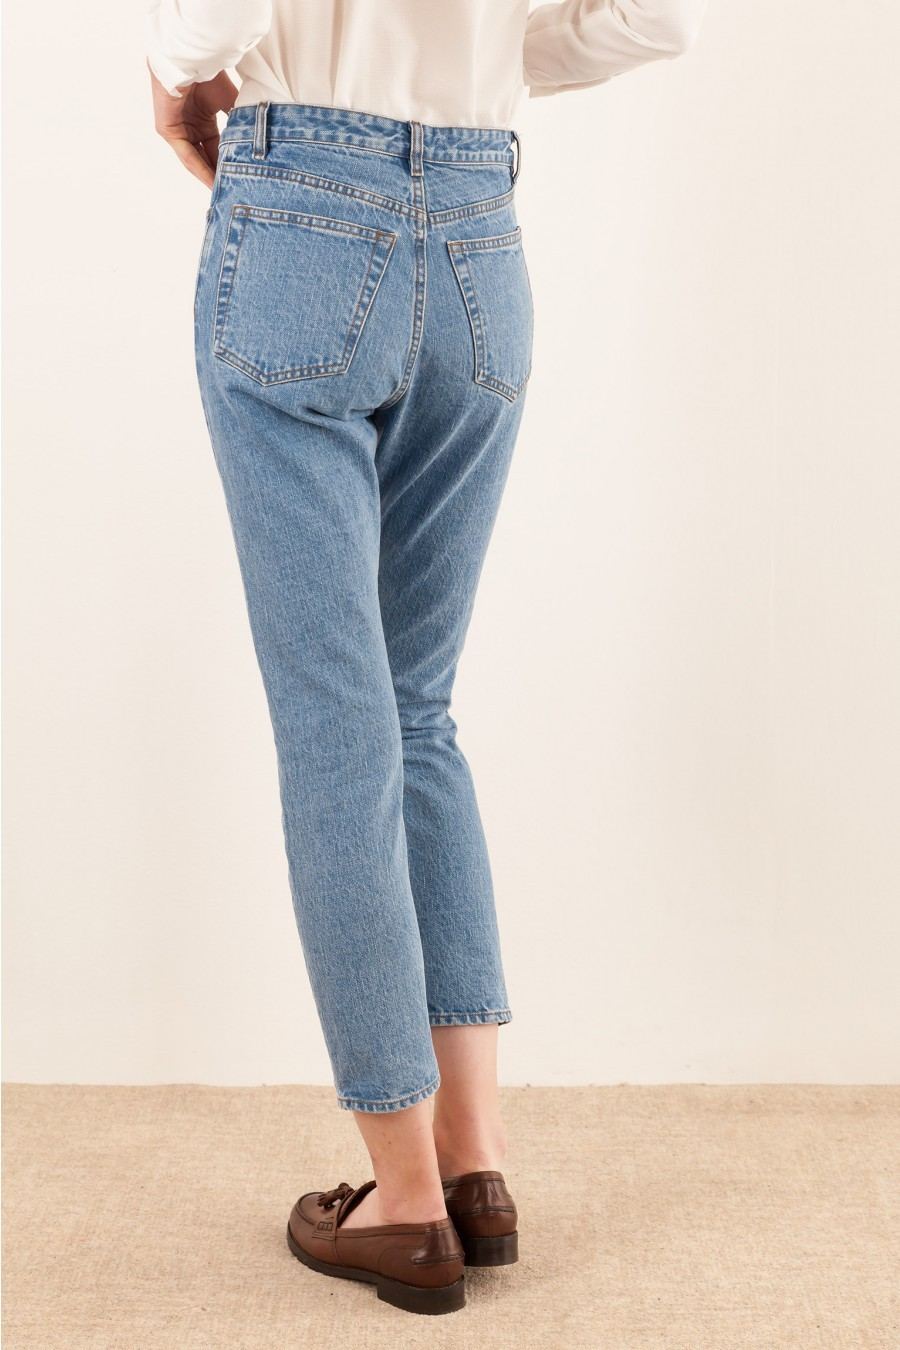 selvage jeans high waist